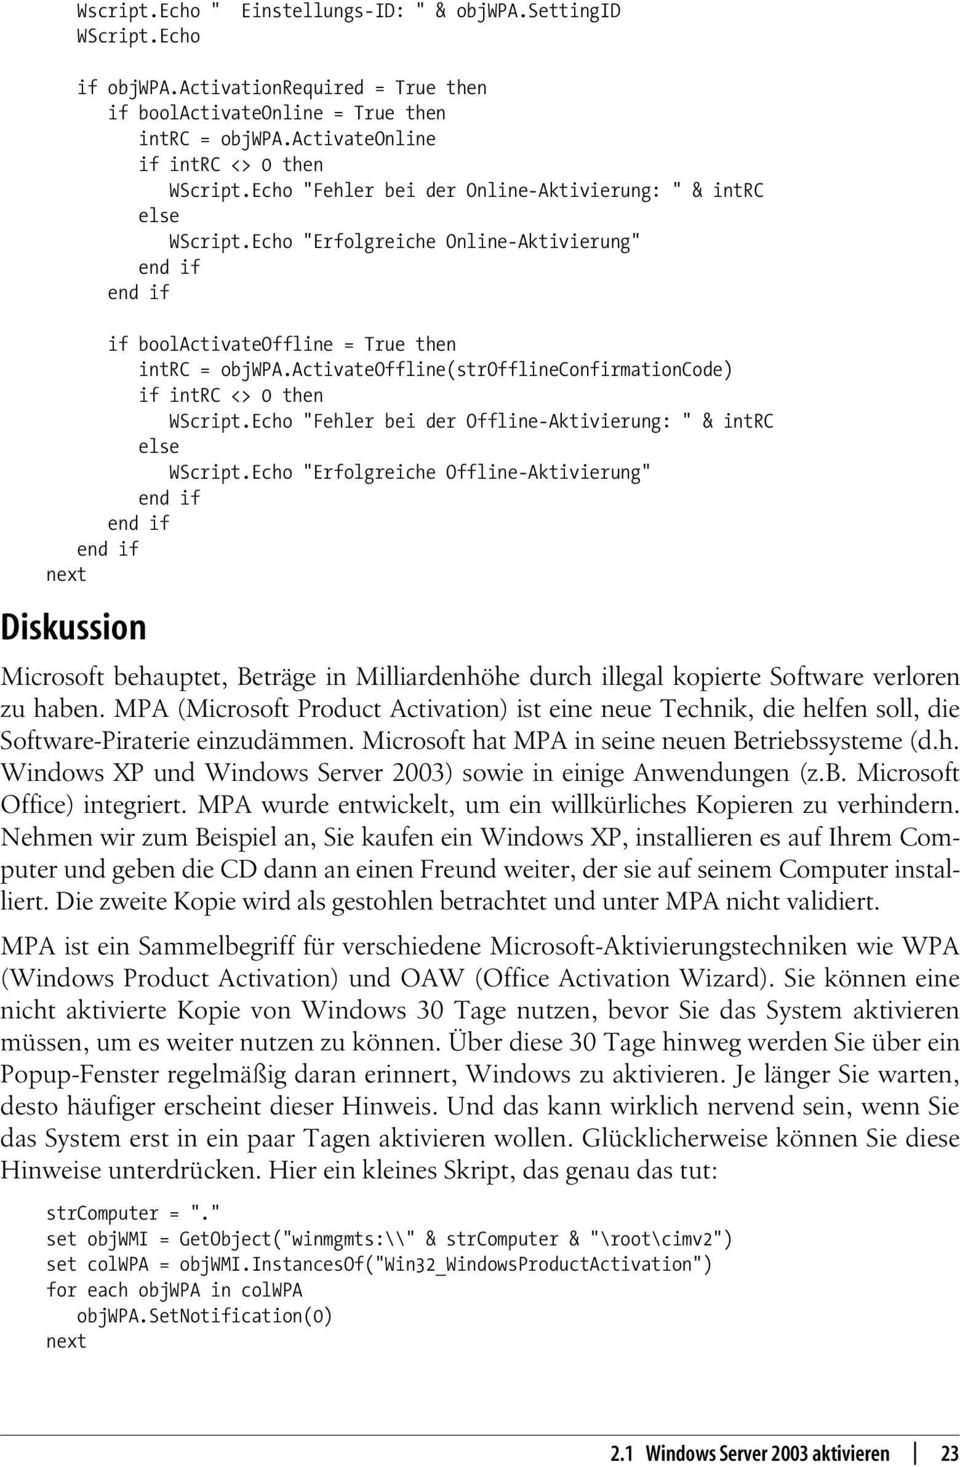 "Echo ""Erfolgreiche Online-Aktivierung"" end if end if if boolactivateoffline = True then intrc = objwpa.activateoffline(strofflineconfirmationcode) if intrc <> 0 then WScript."